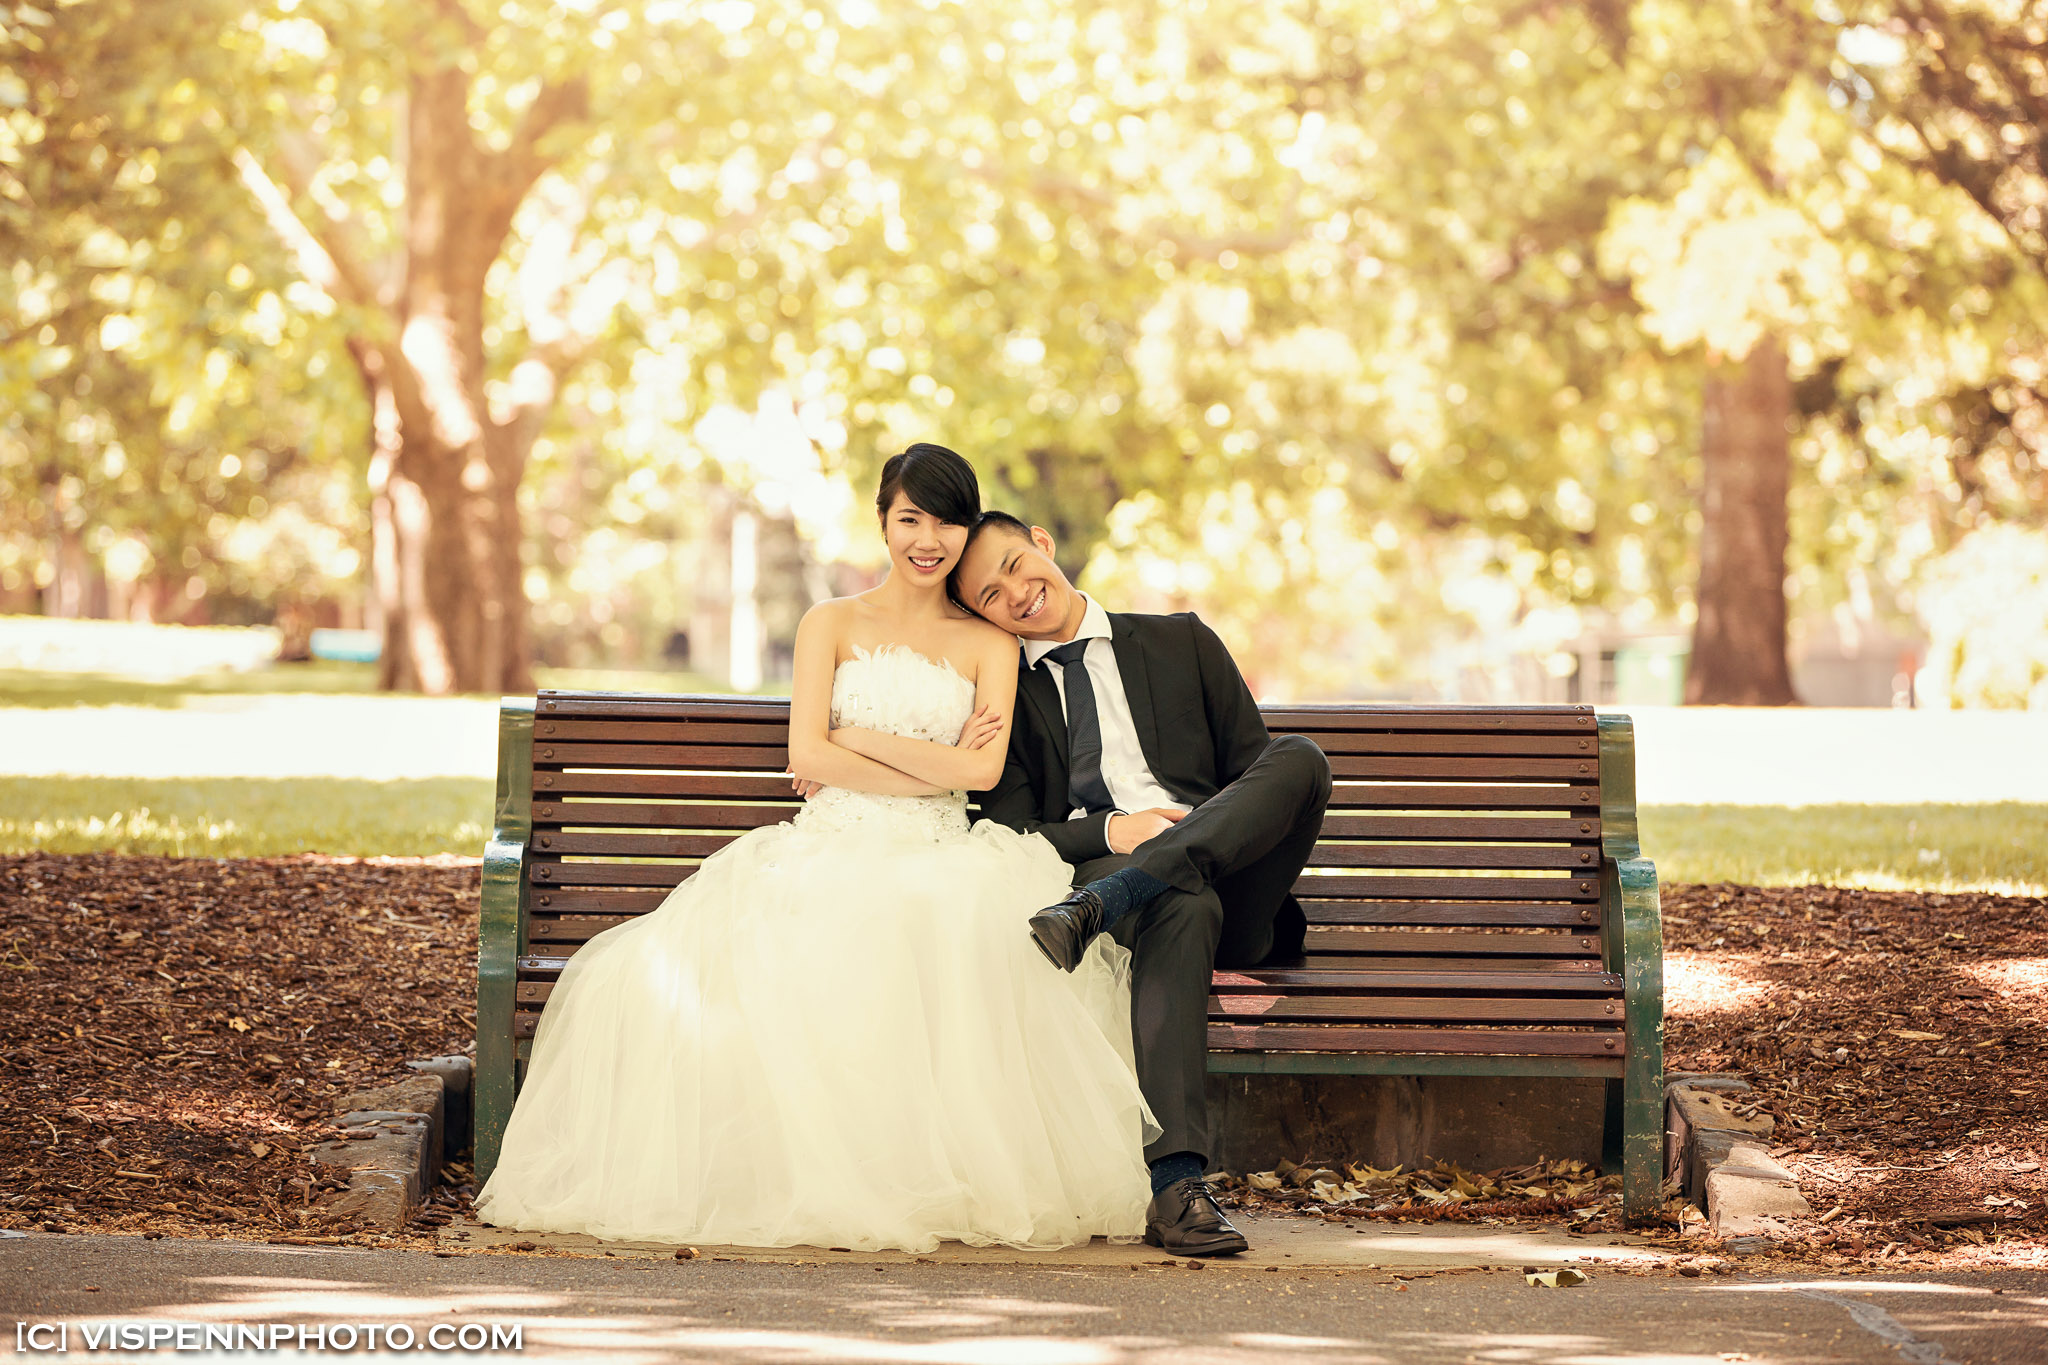 PRE WEDDING Photography Melbourne Ivy PreWedding 1691